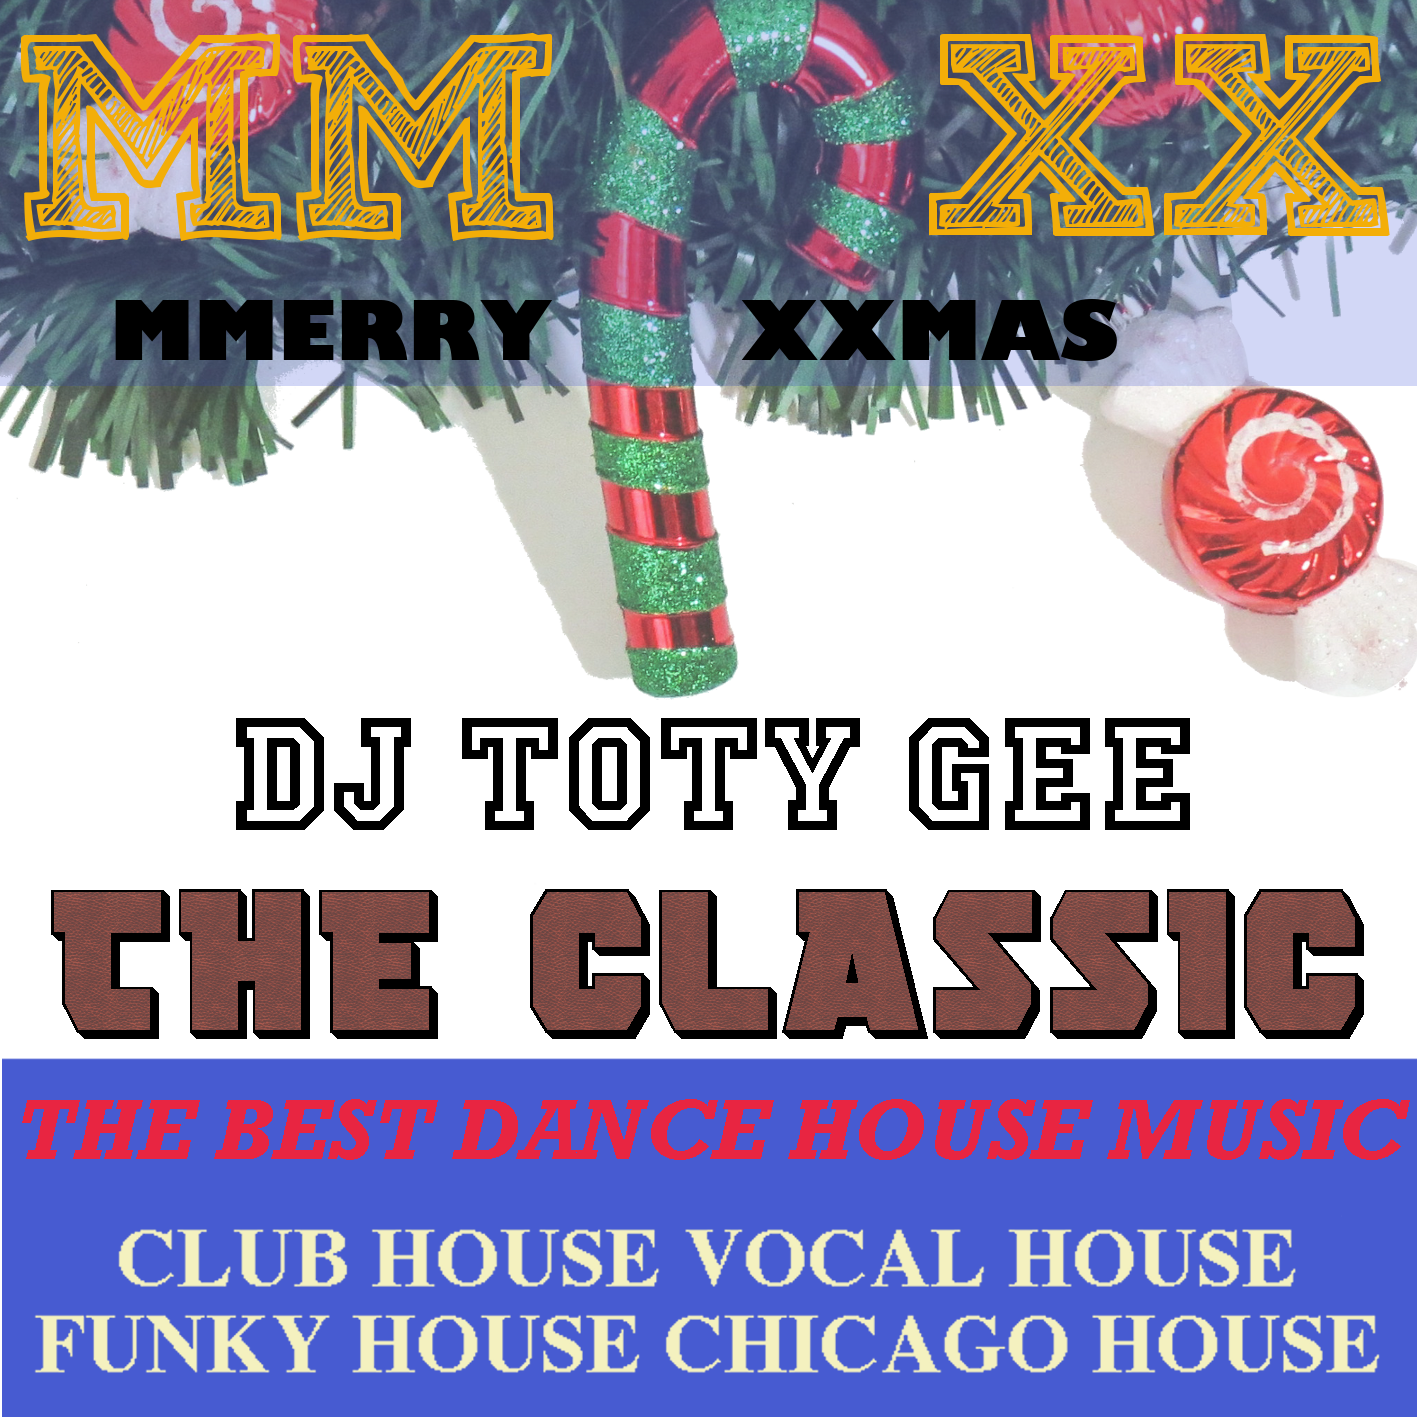 MMerry XXmass by DJ TOTY GEE (Classic House and dance)